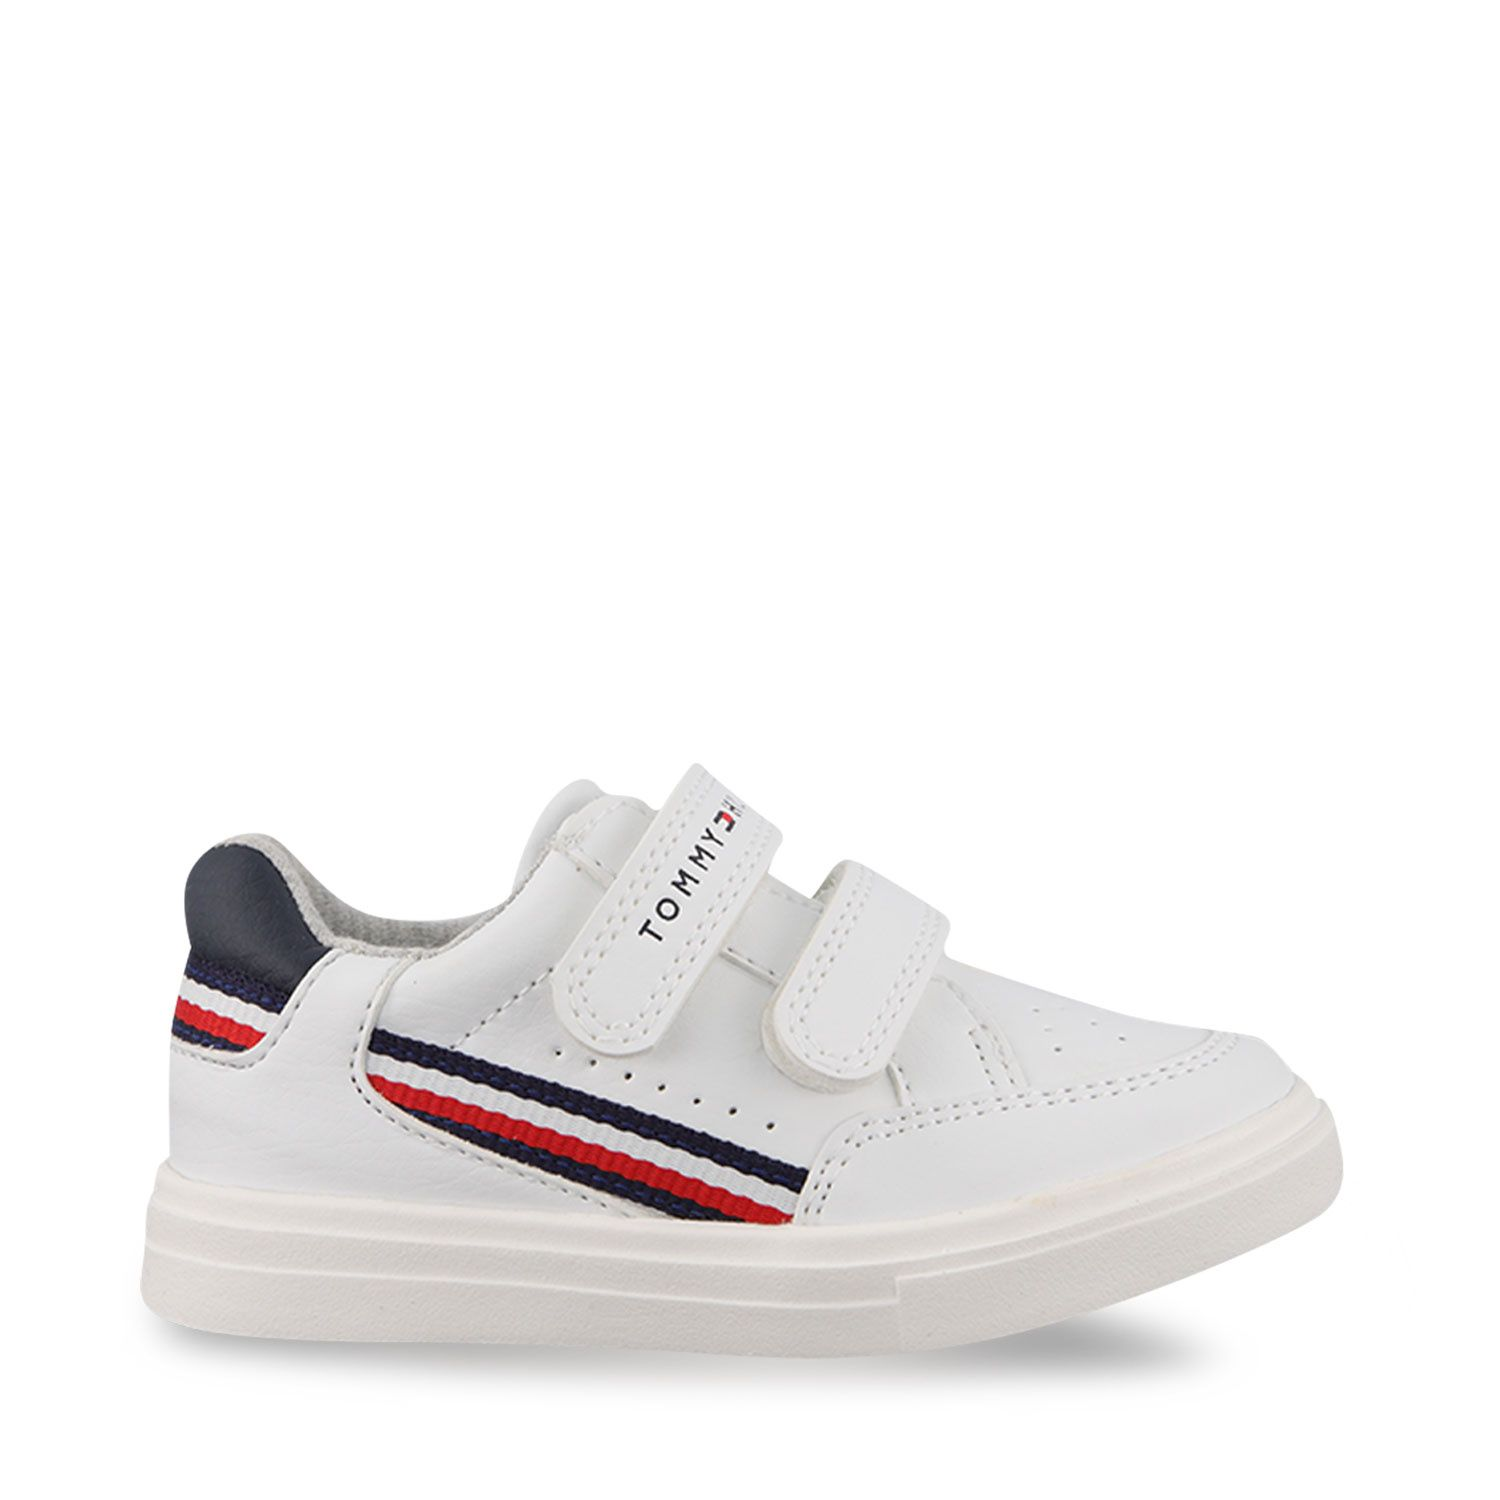 Picture of Tommy Hilfiger 31073 kids sneakers white